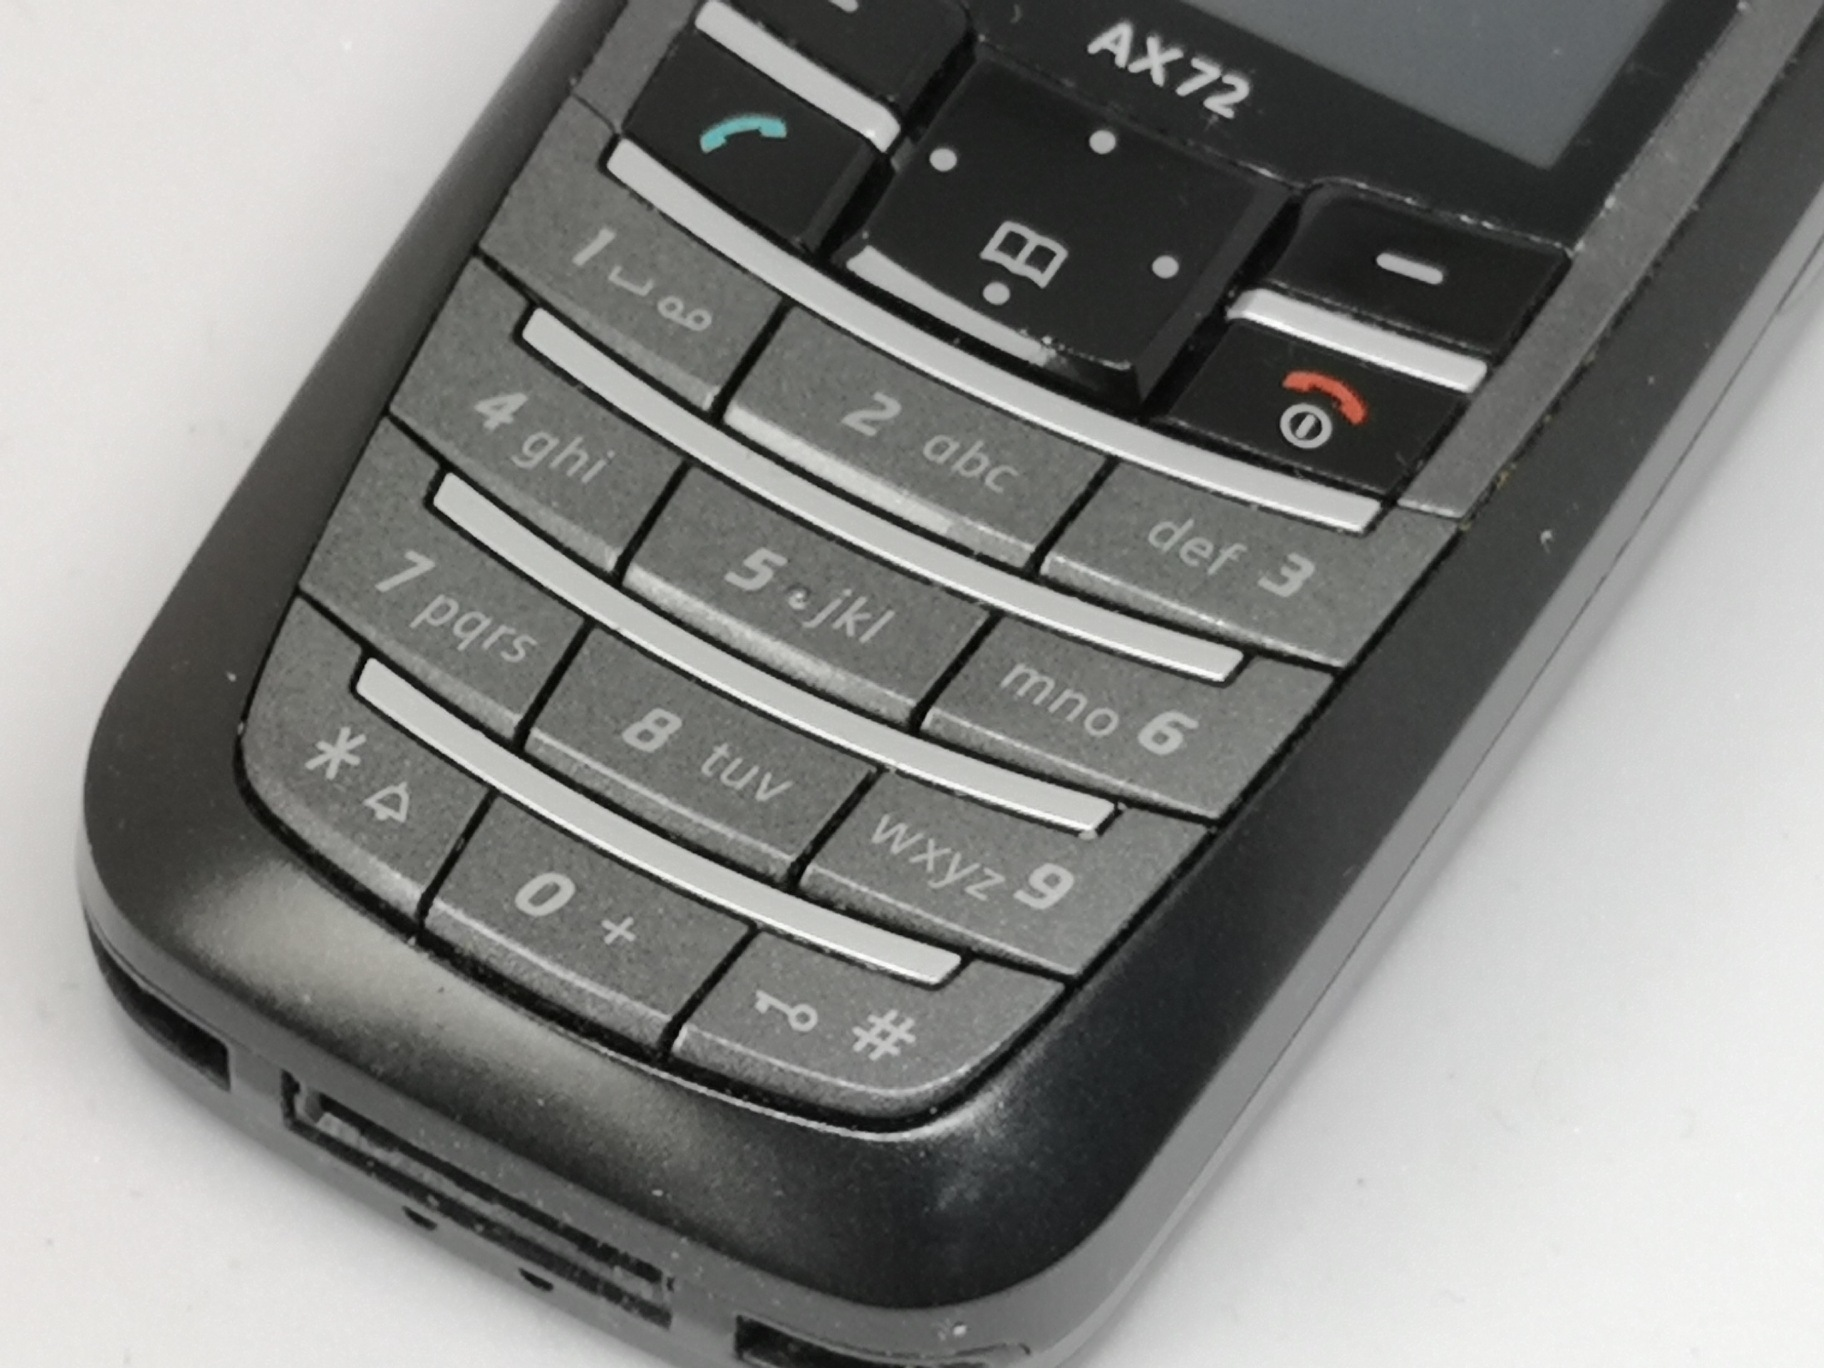 Siemens AX72 Review - Basic Candybar Mobile Phone